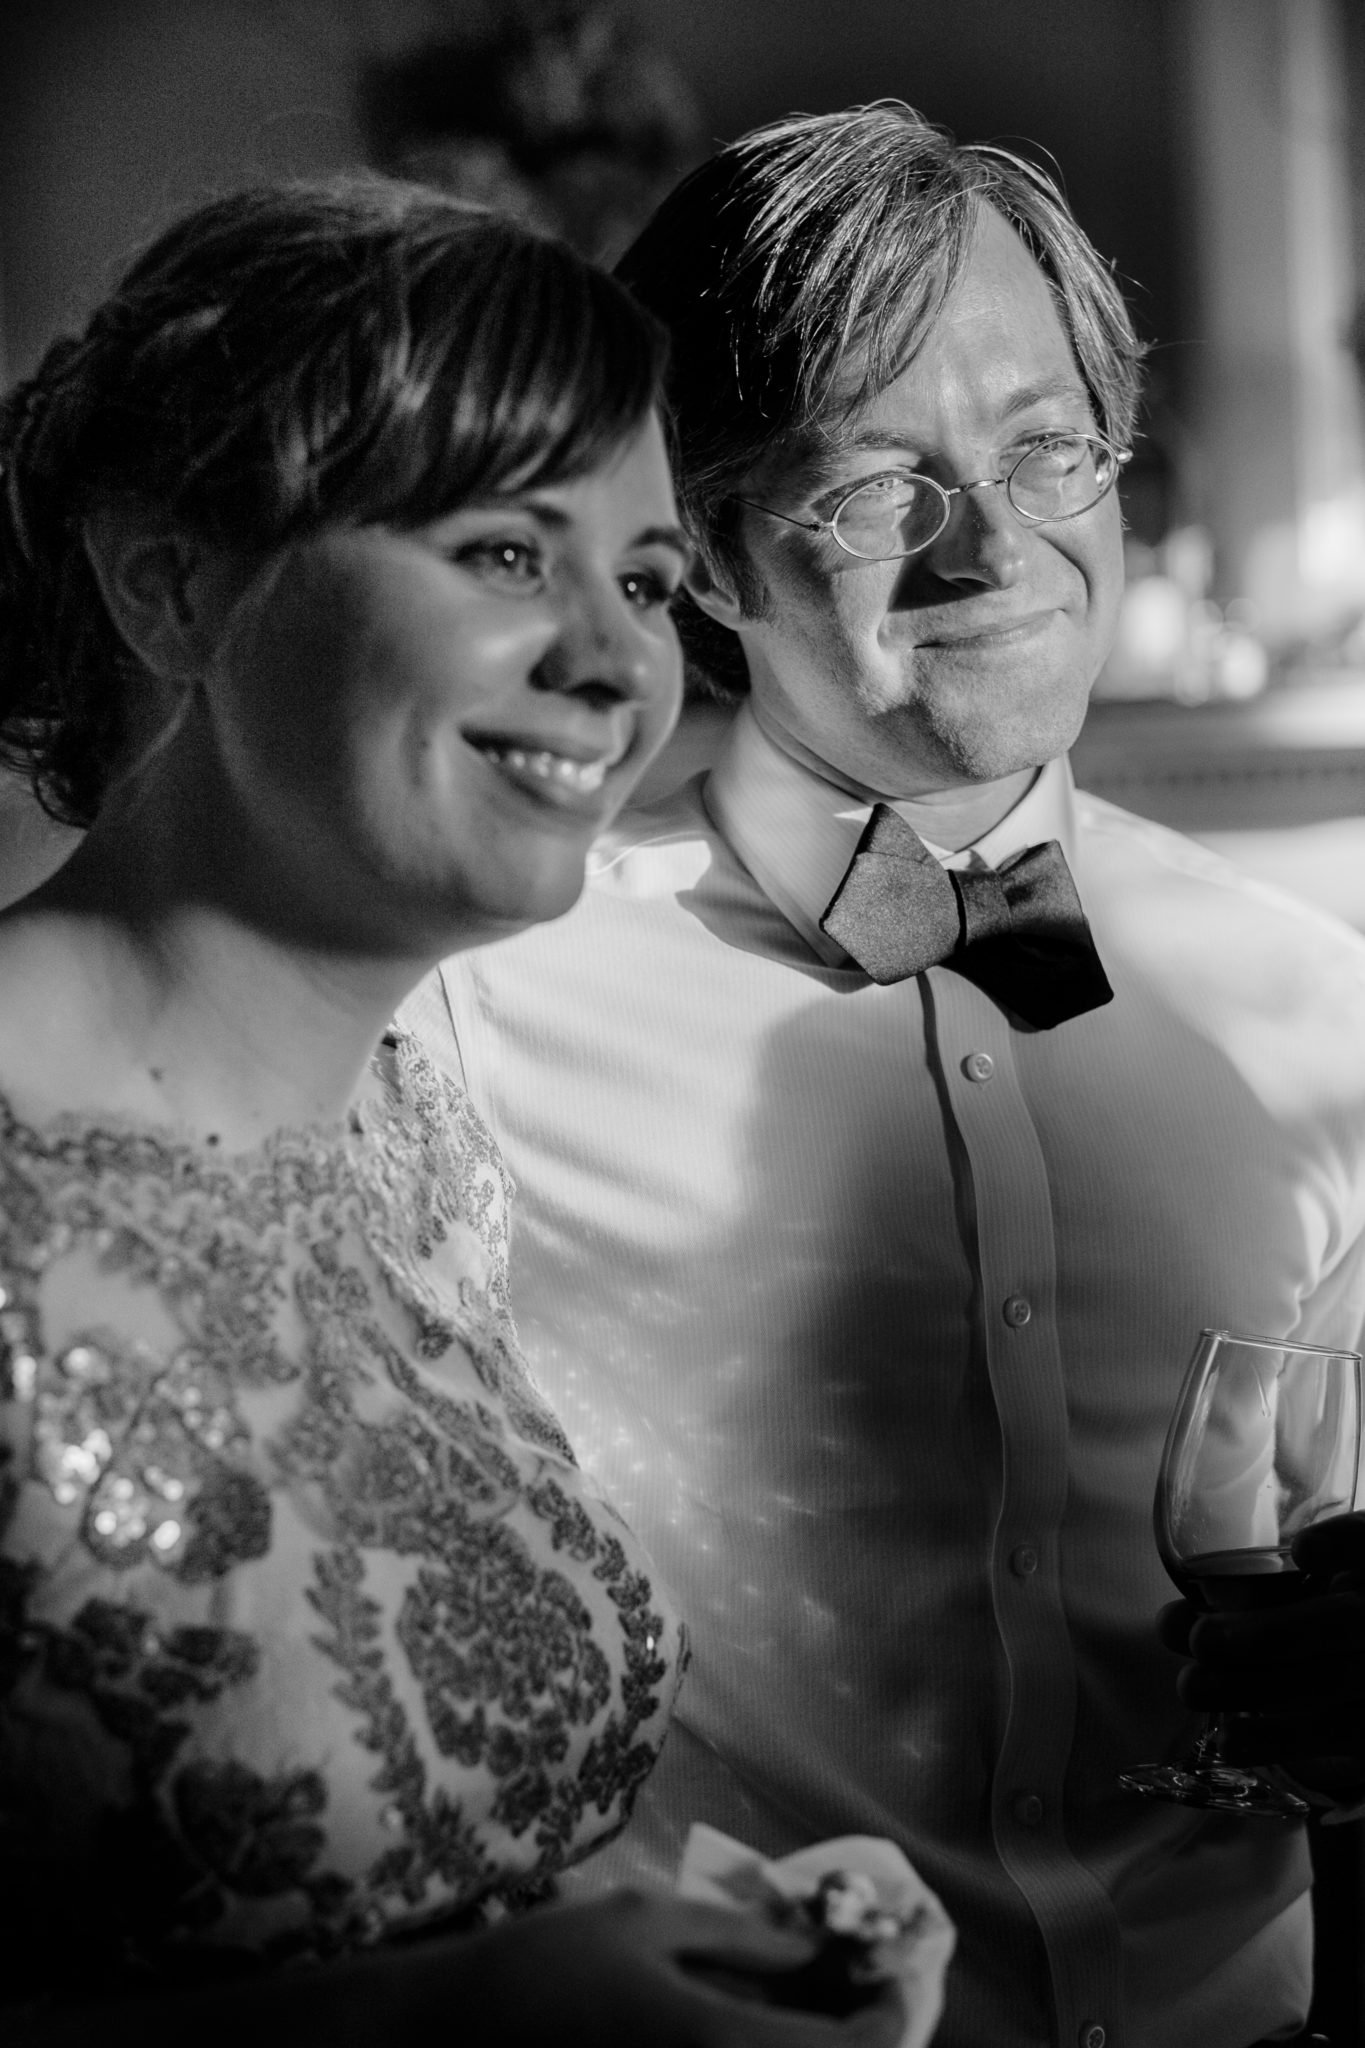 Candid photo of bride and groom at a wedding in Cedar Rapids, Iowa